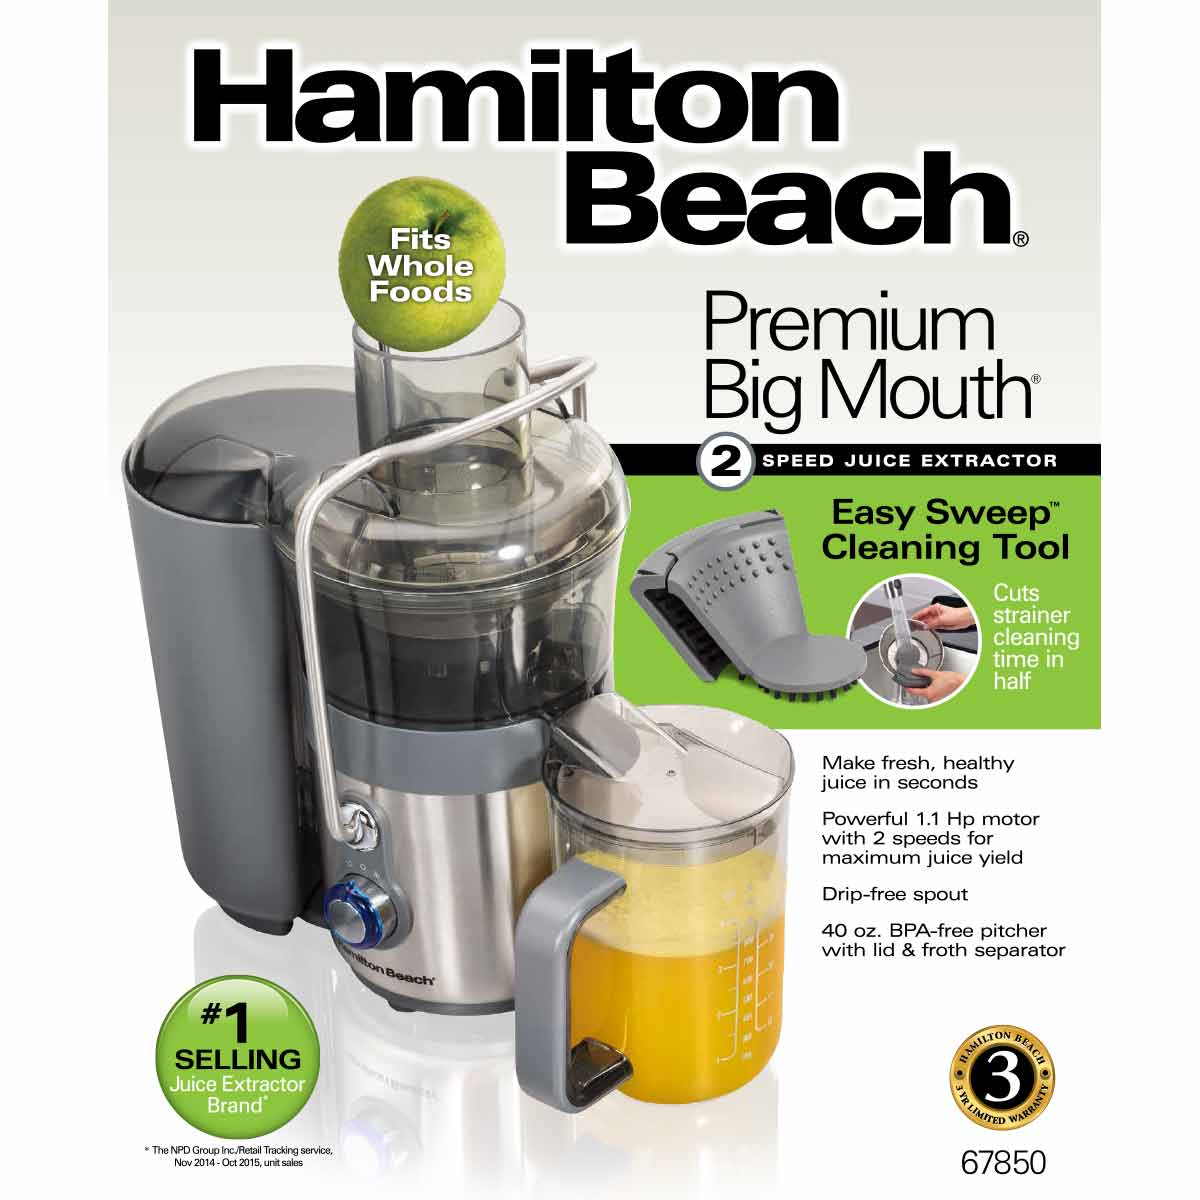 easy clean big mouth 2 speed juice extractor 67850